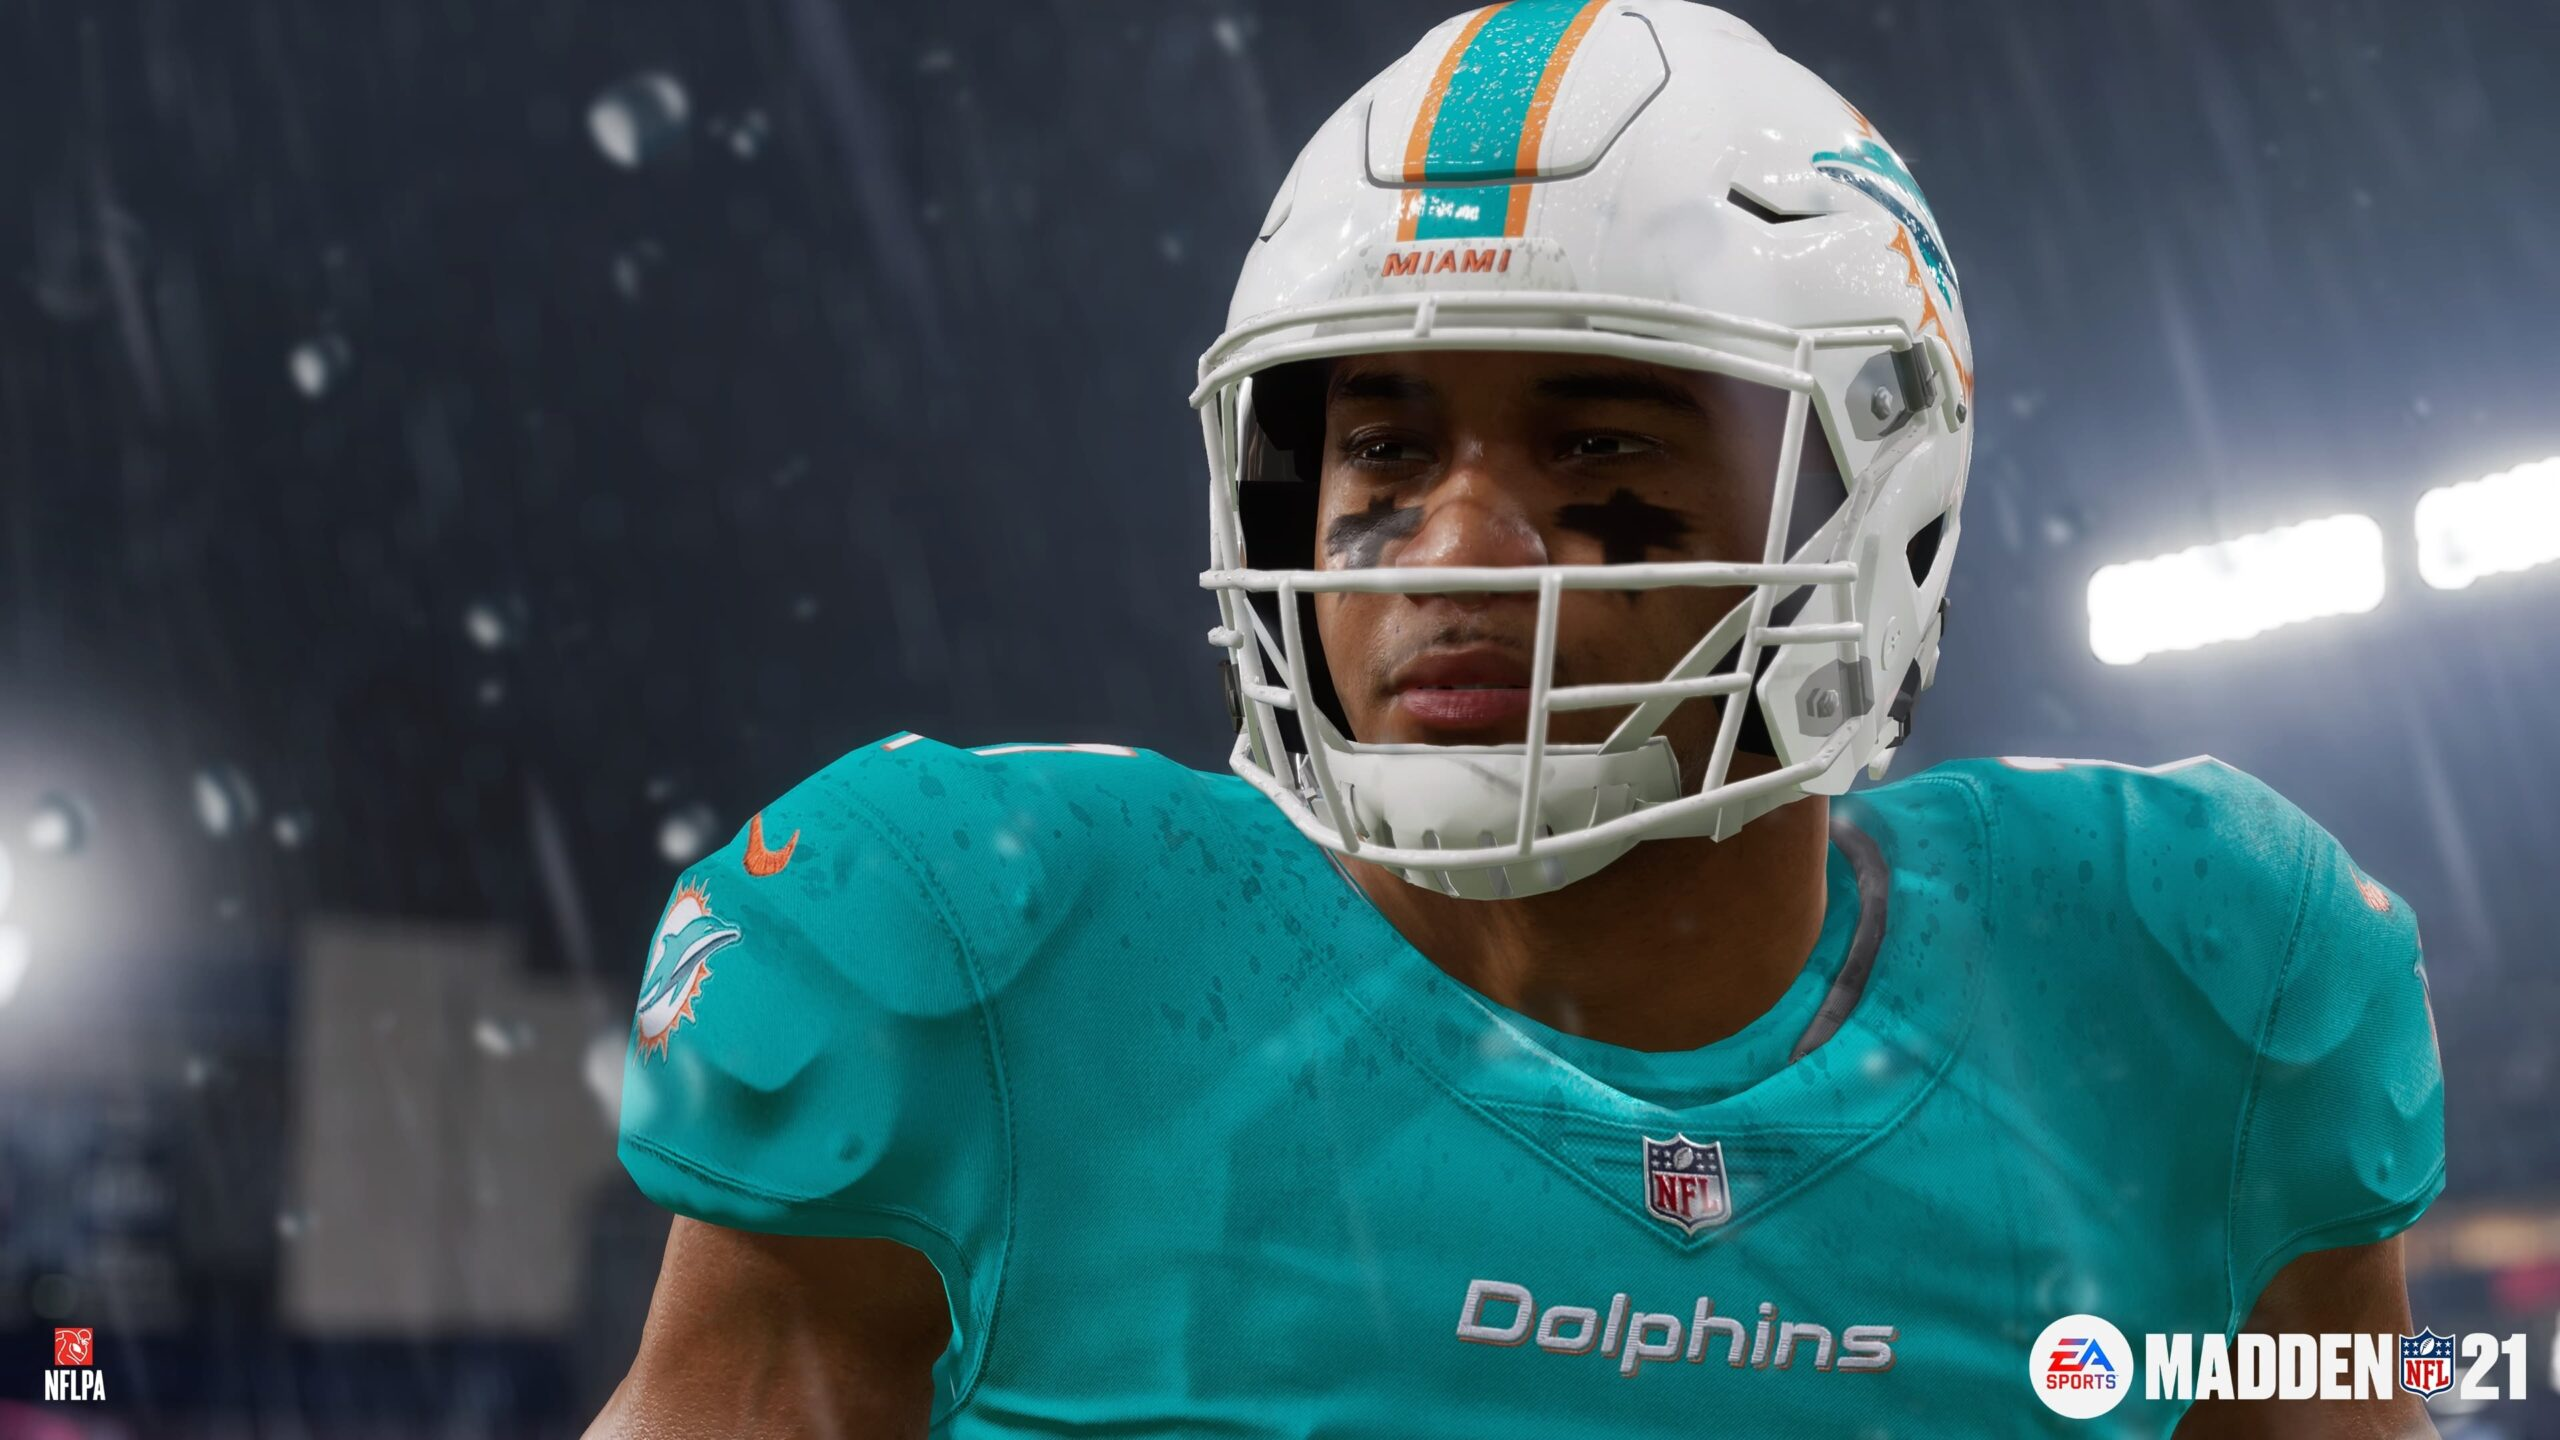 Madden NFL 21 Unveils Next Generation Gameplay